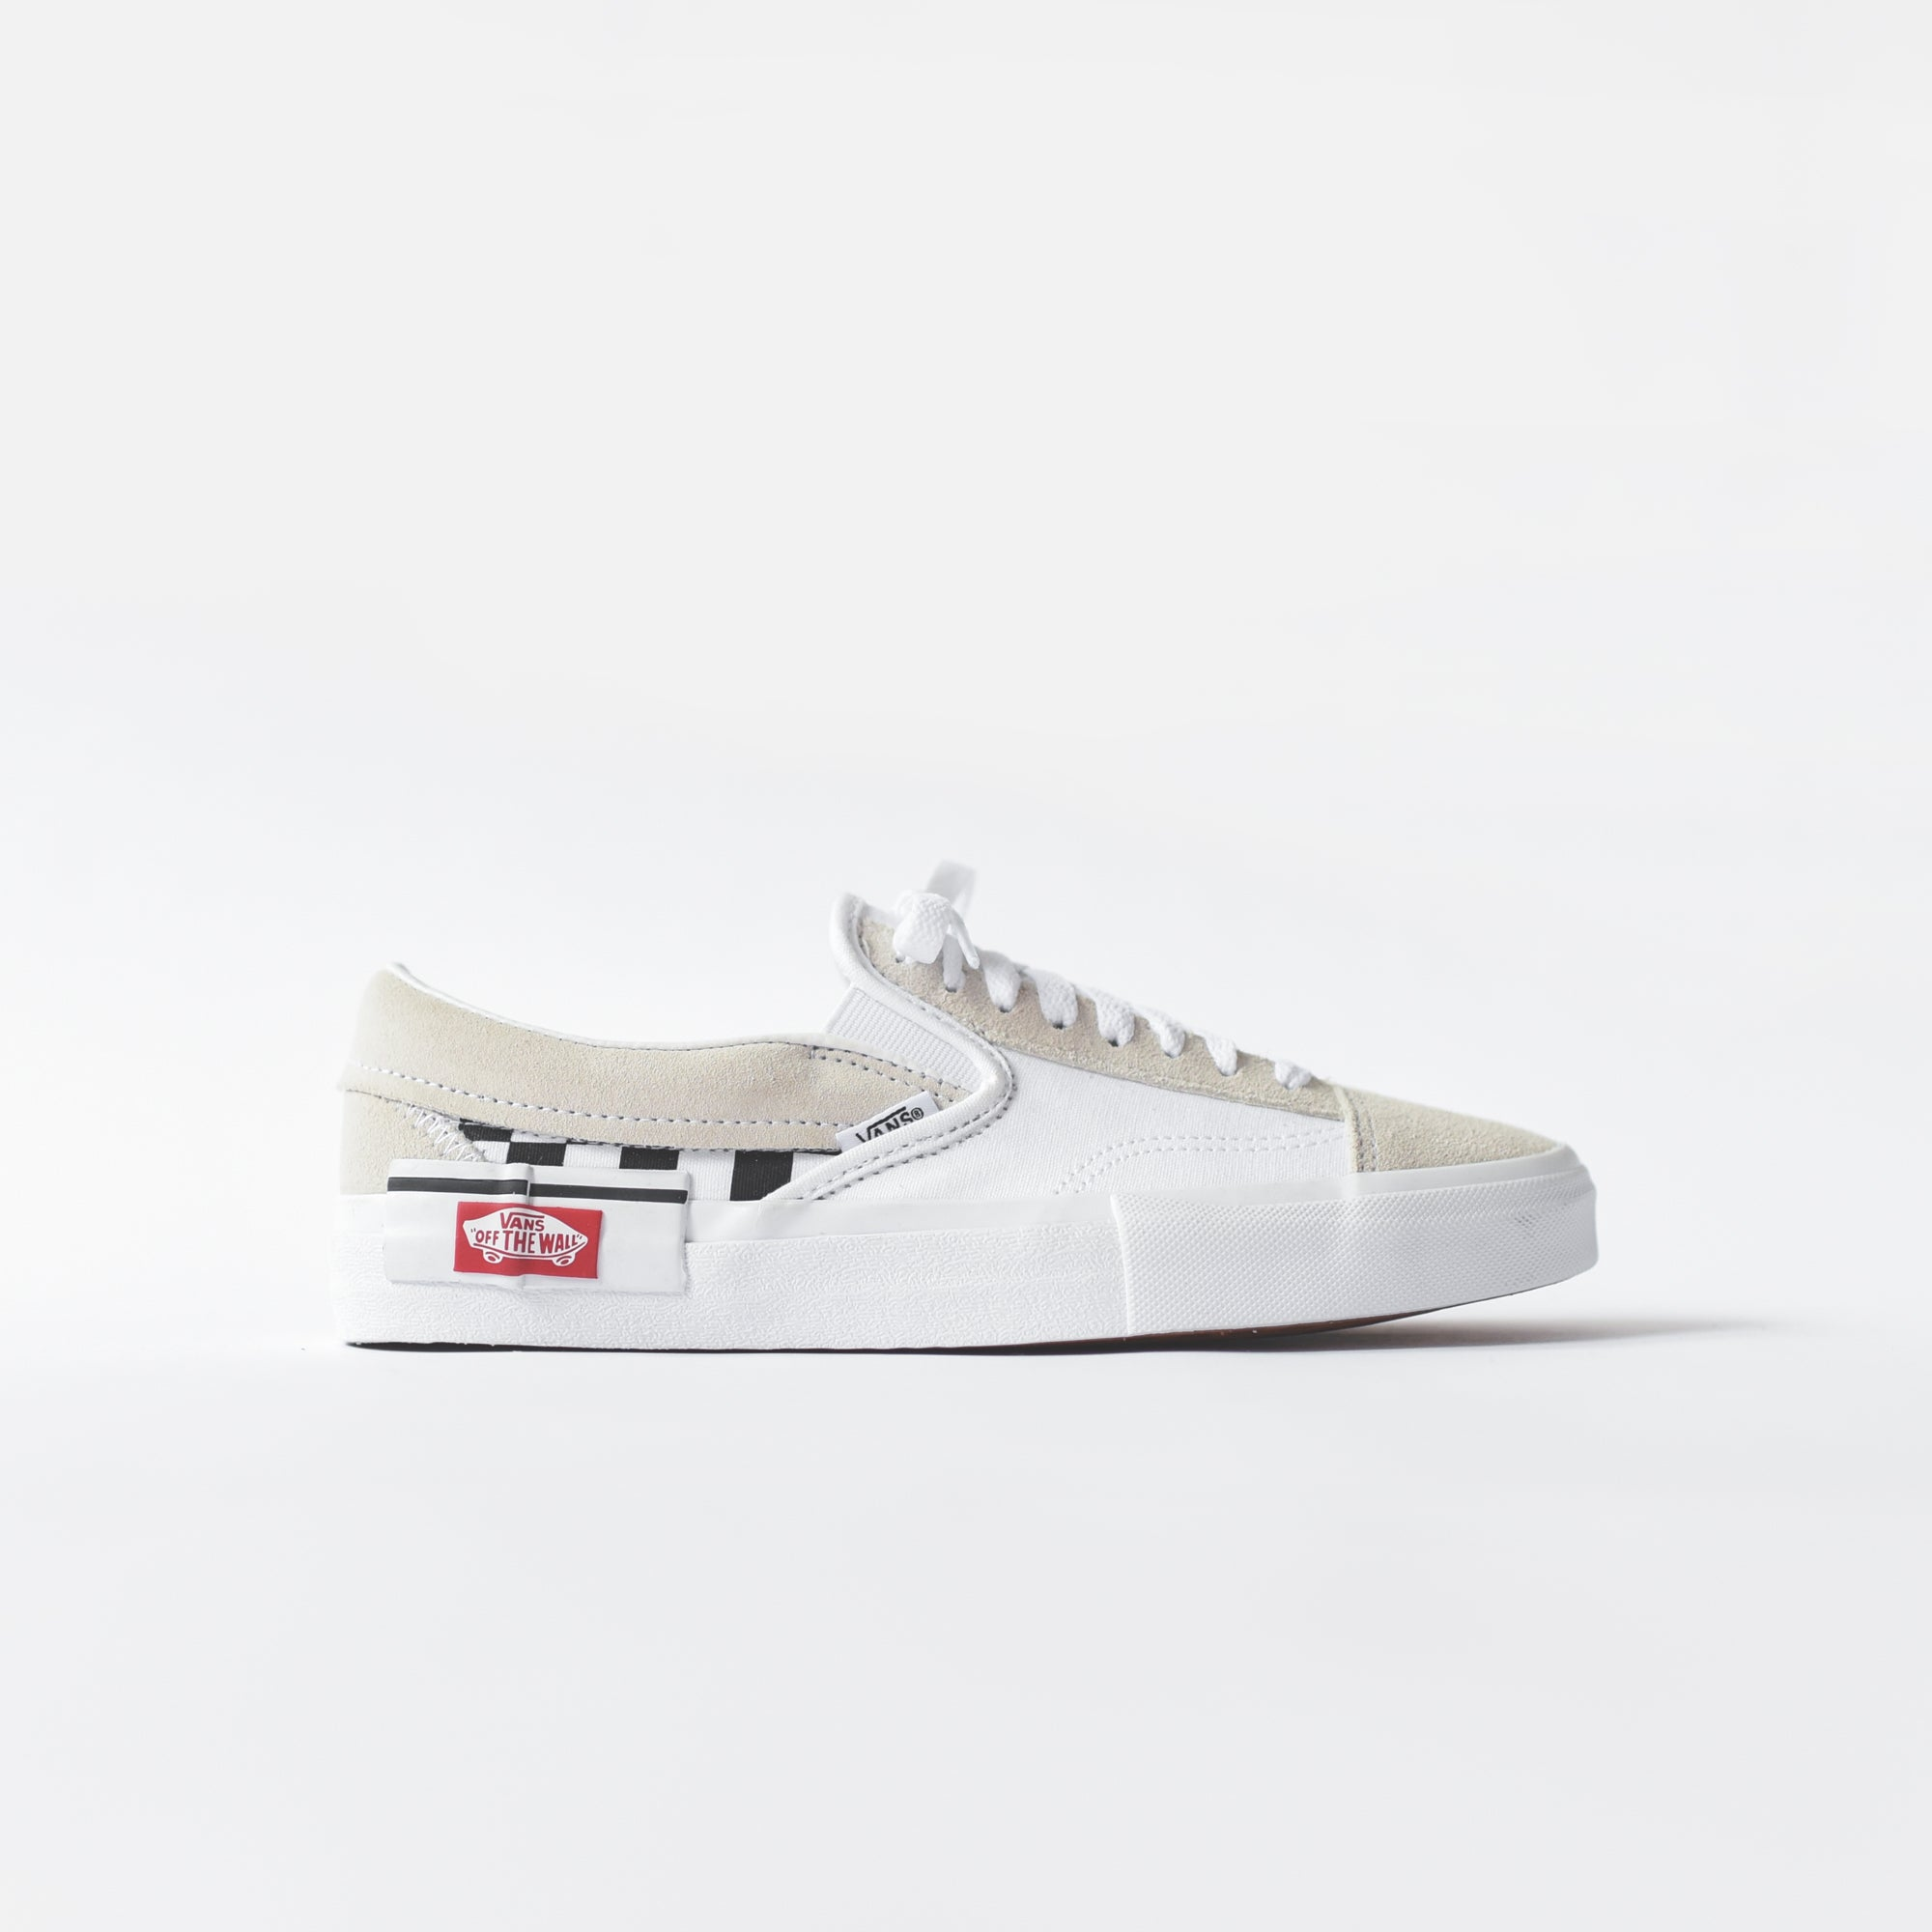 Vans Slip-On Cap - Checkerboard   True White   Black – Kith 0737f54ea